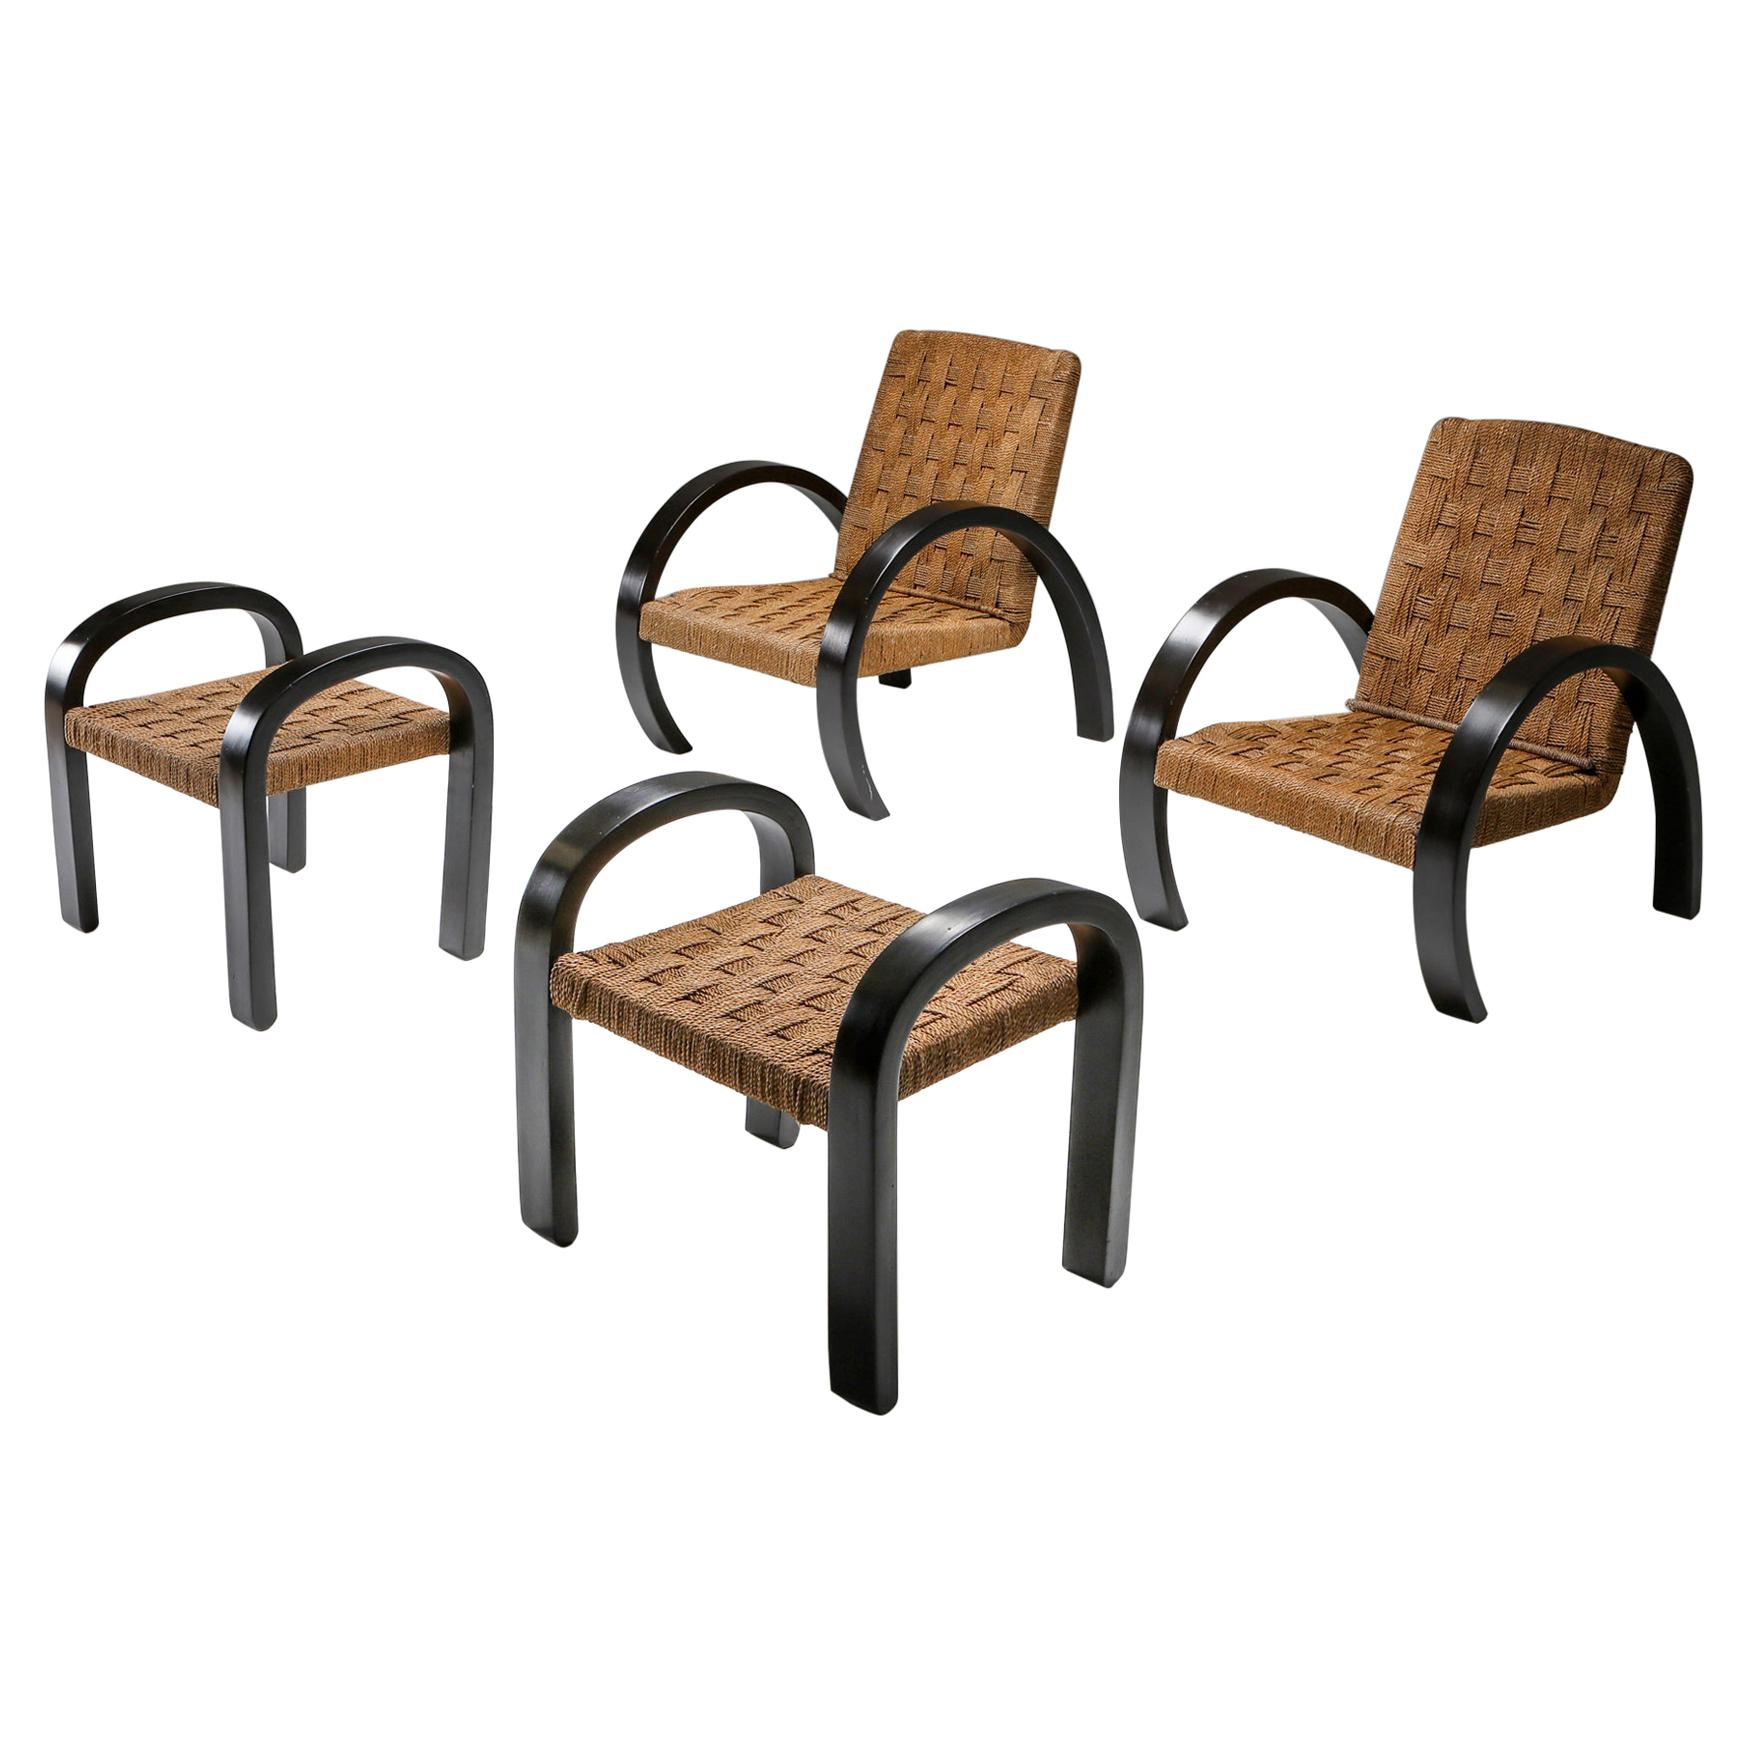 Rustic Modern Armchairs with Ottoman